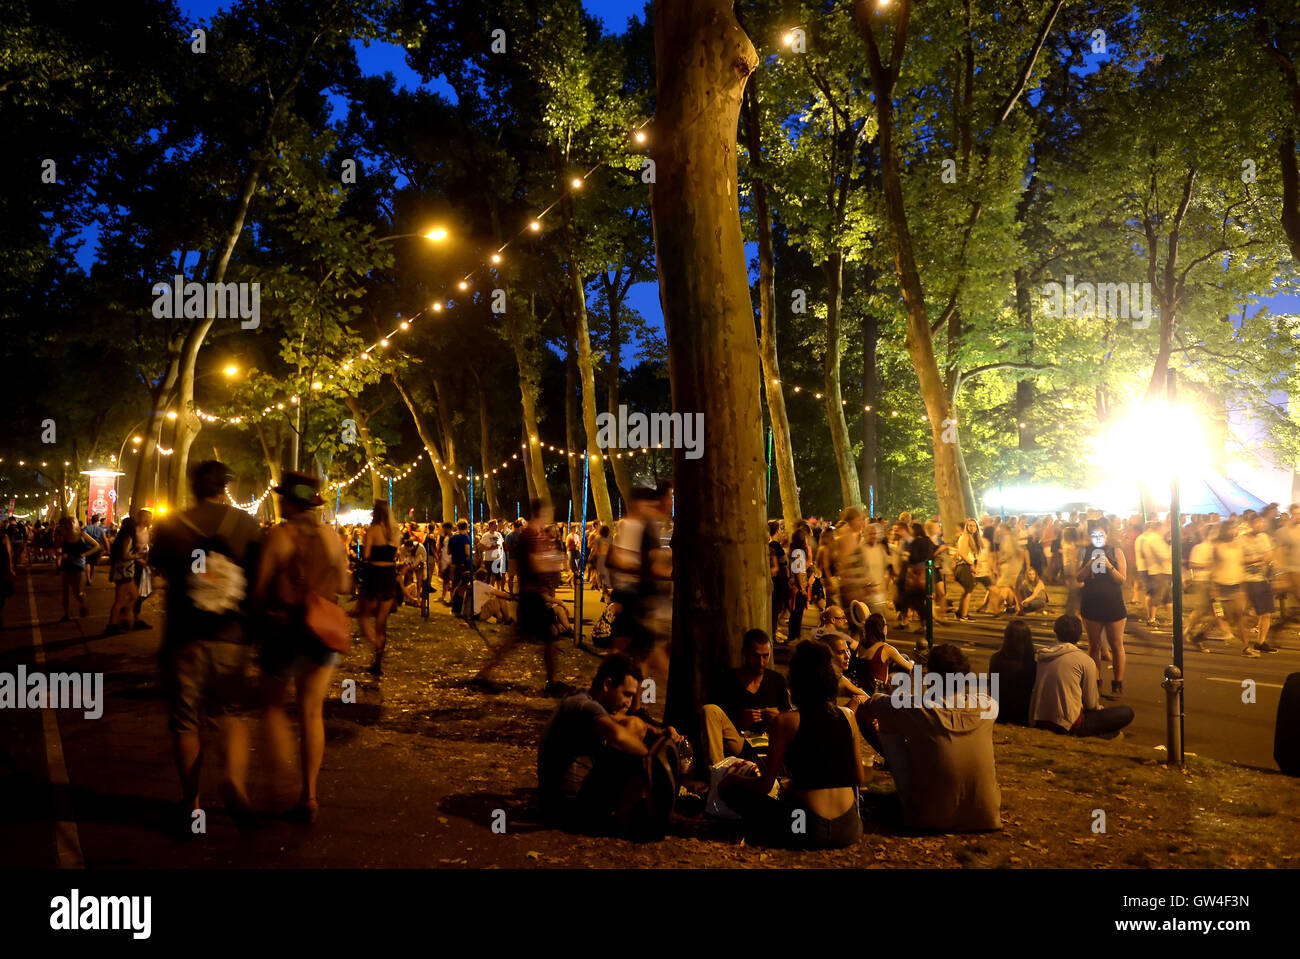 Berlin, Germany. 10th Sep, 2016. Visitors walking on the grounds of the music festival Lollapalooza in Berlin, Germany, - Stock Image